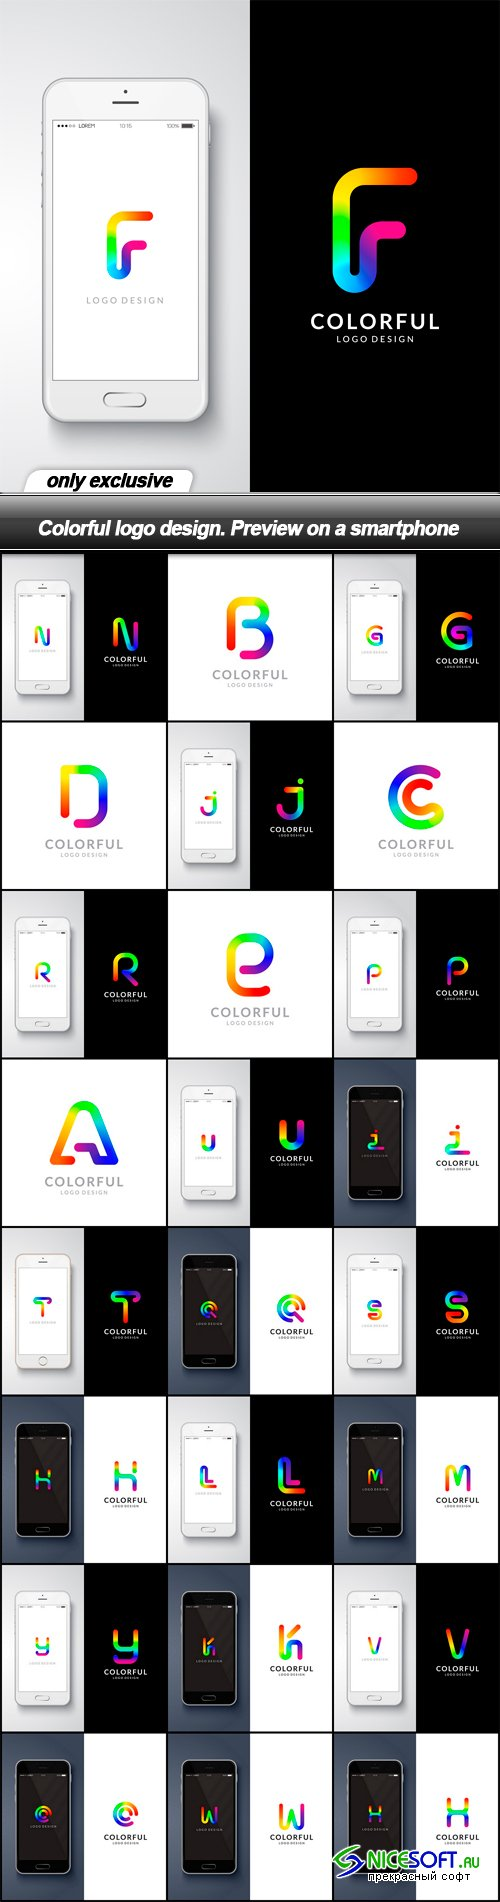 Colorful logo design. Preview on a smartphone